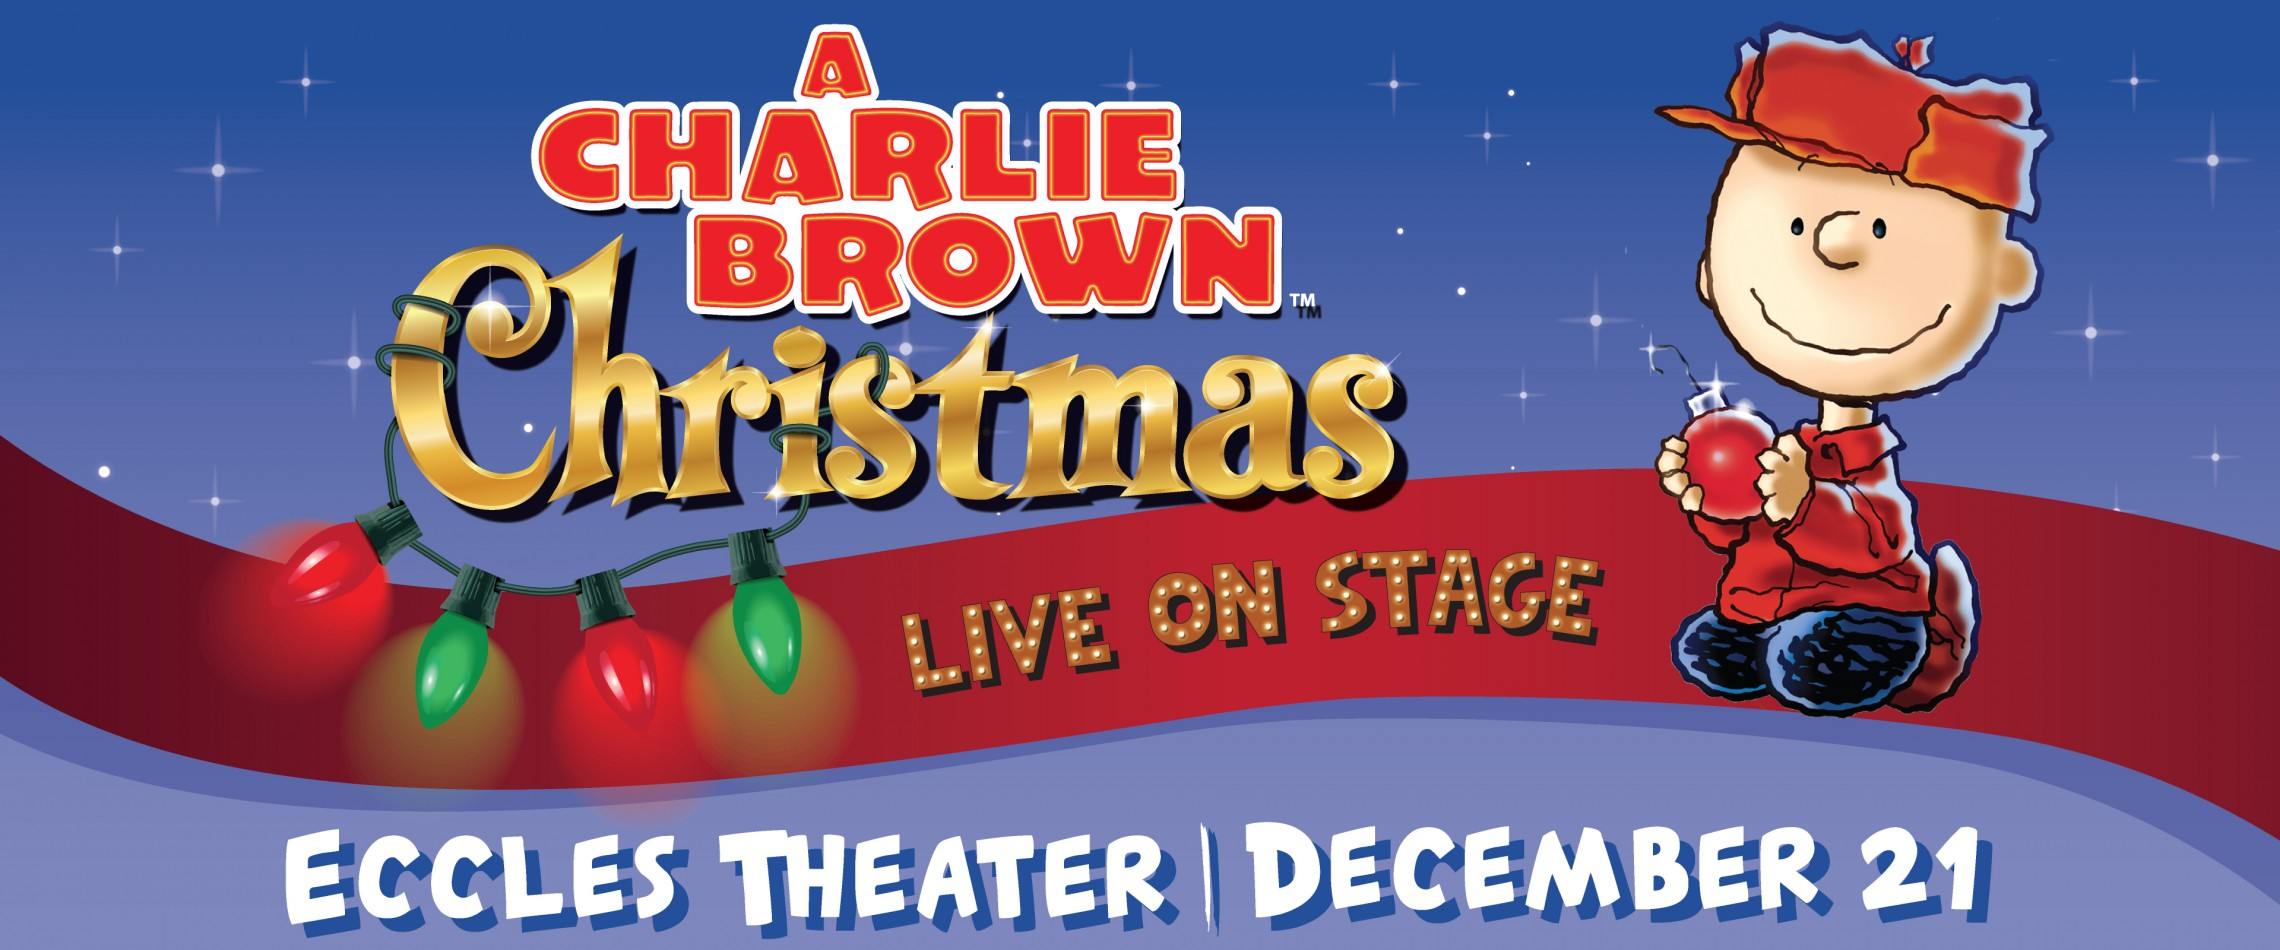 Charlie Brown Christmas Images.A Charlie Brown Christmas Live At The Eccles